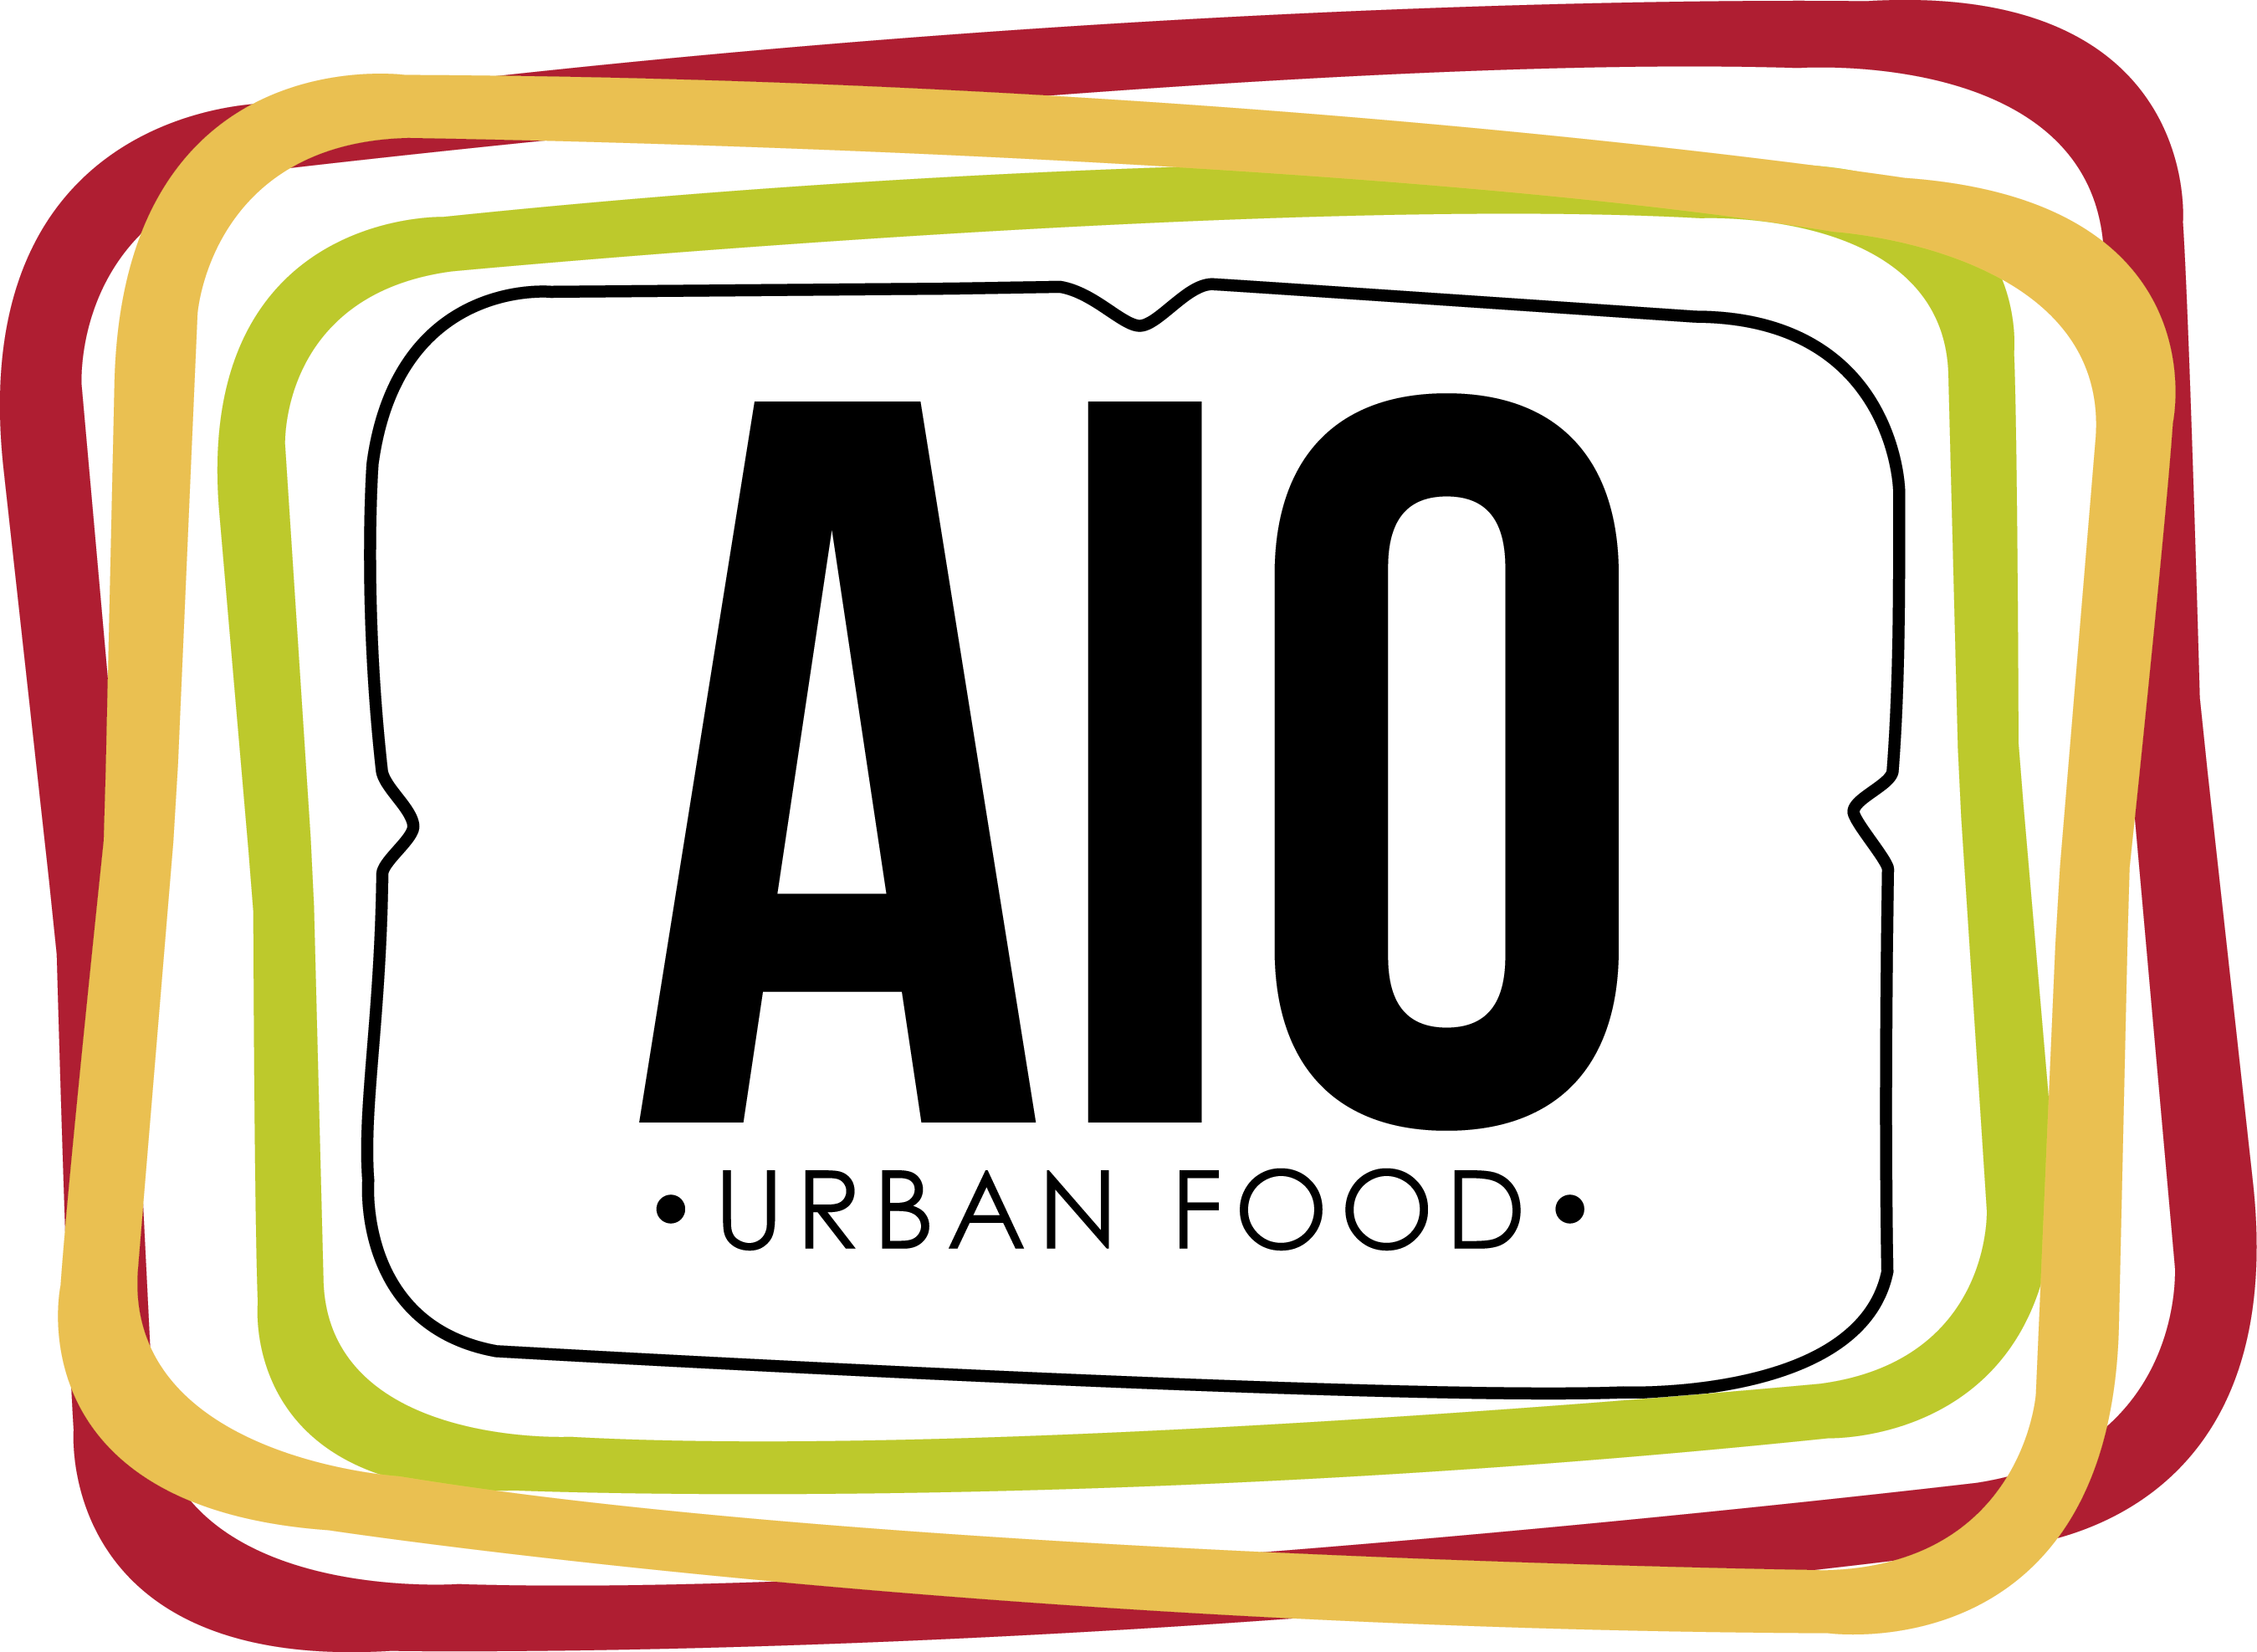 AIO Urban Food